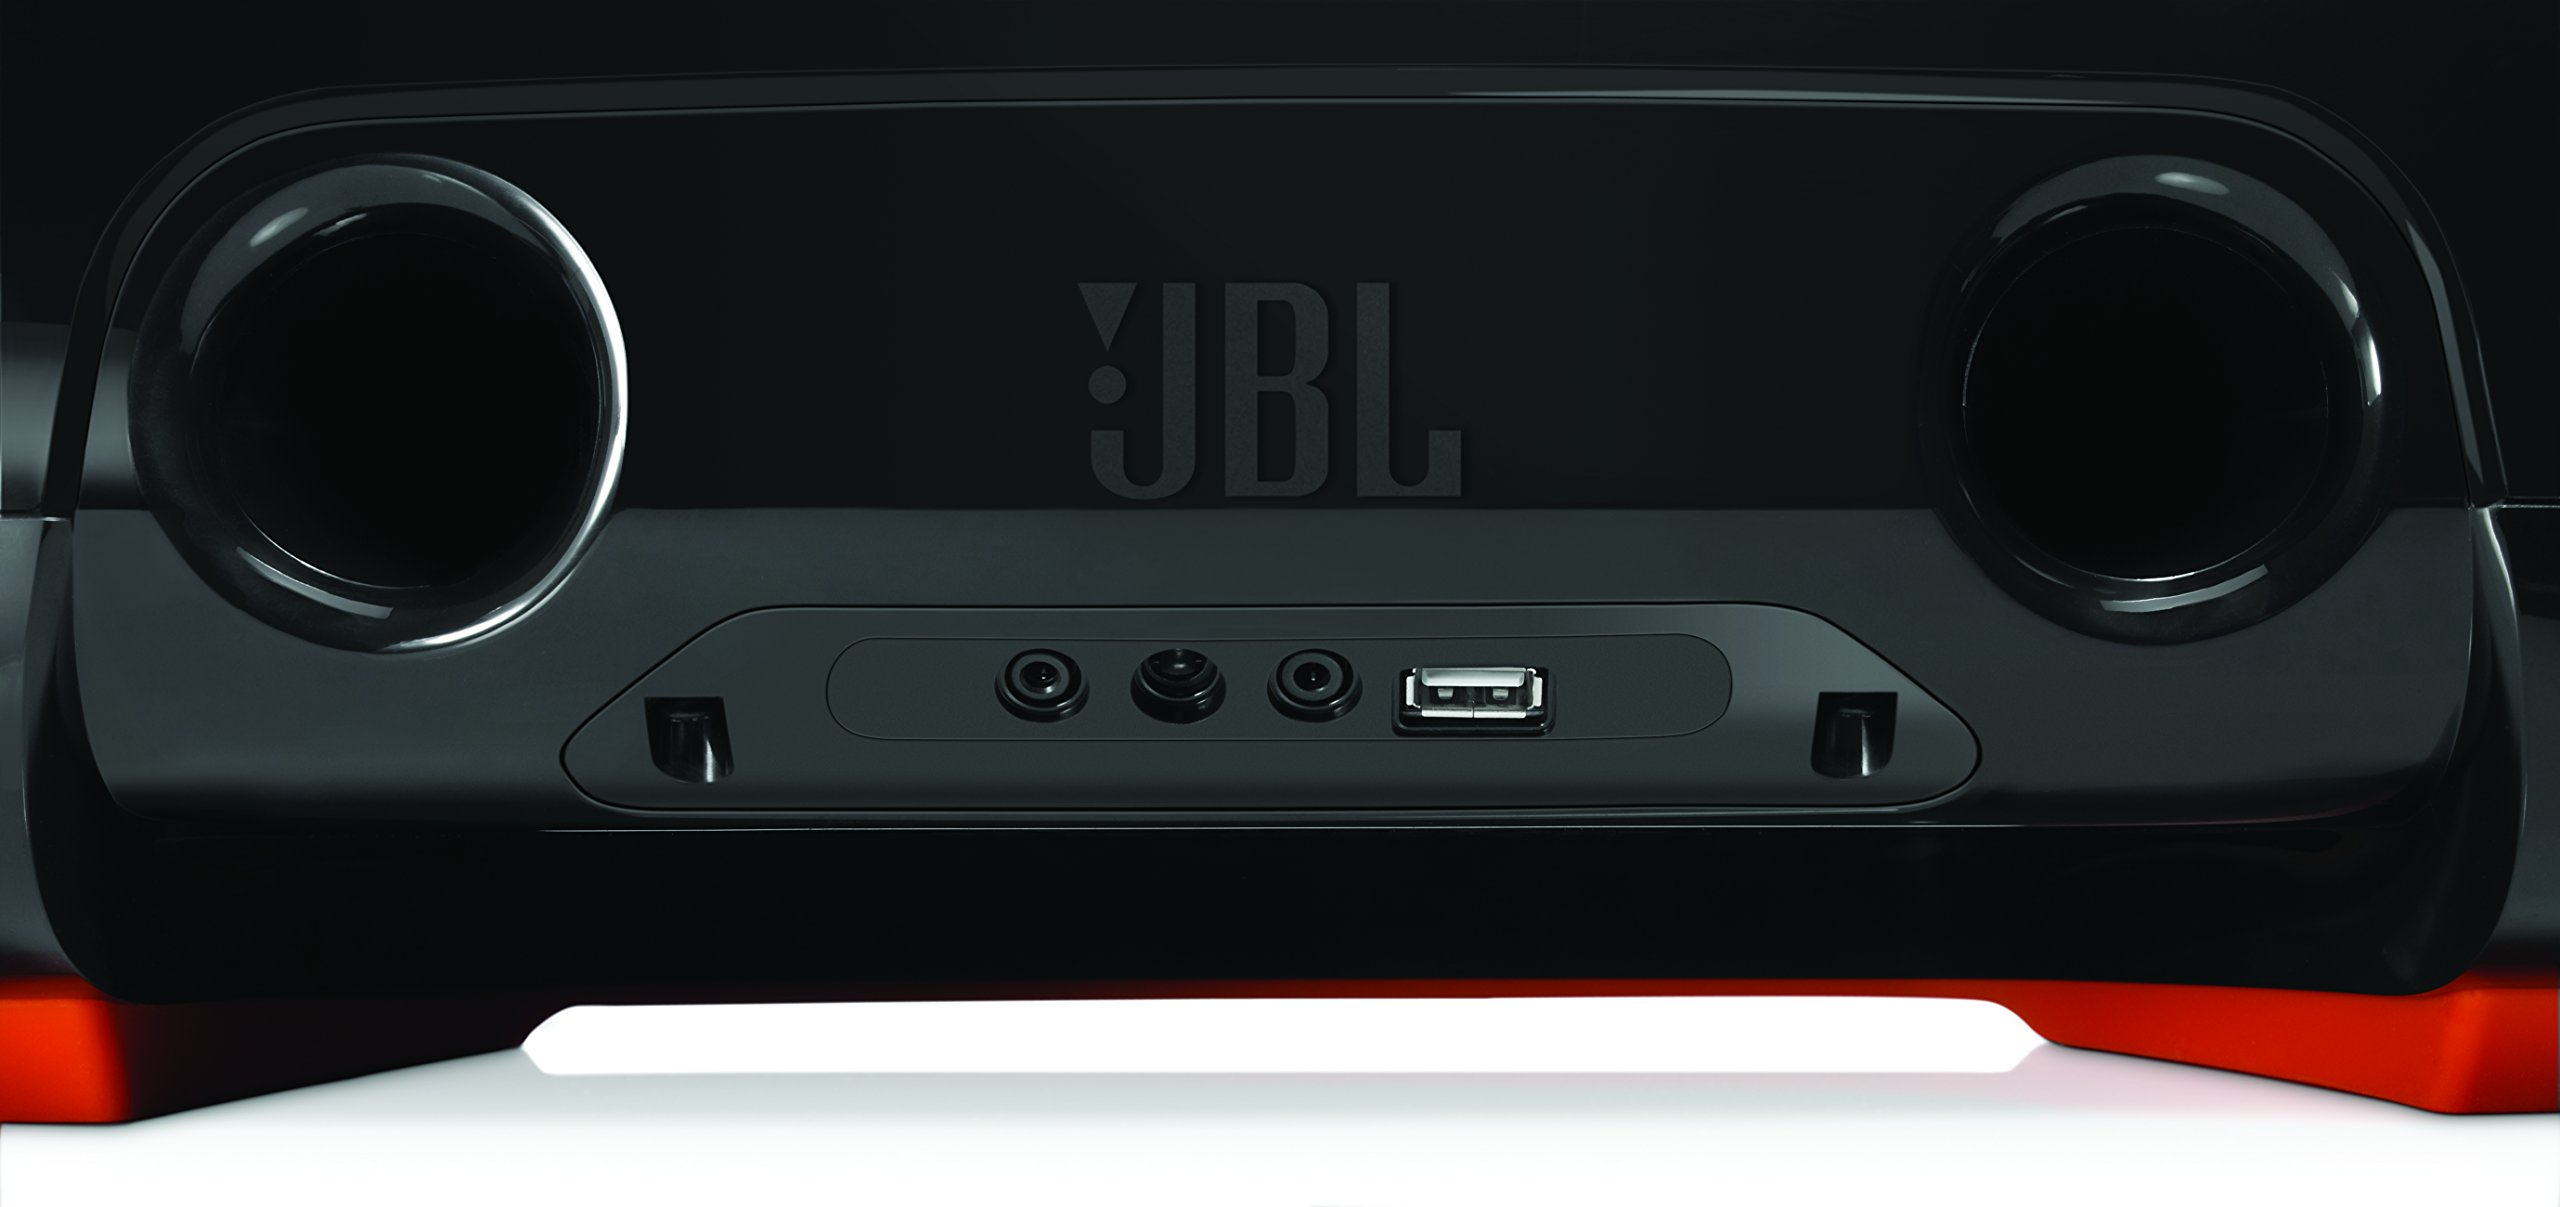 JBL On Beat Rumble Wireless Speaker Dock with Lightning Connector by JBL (Image #4)